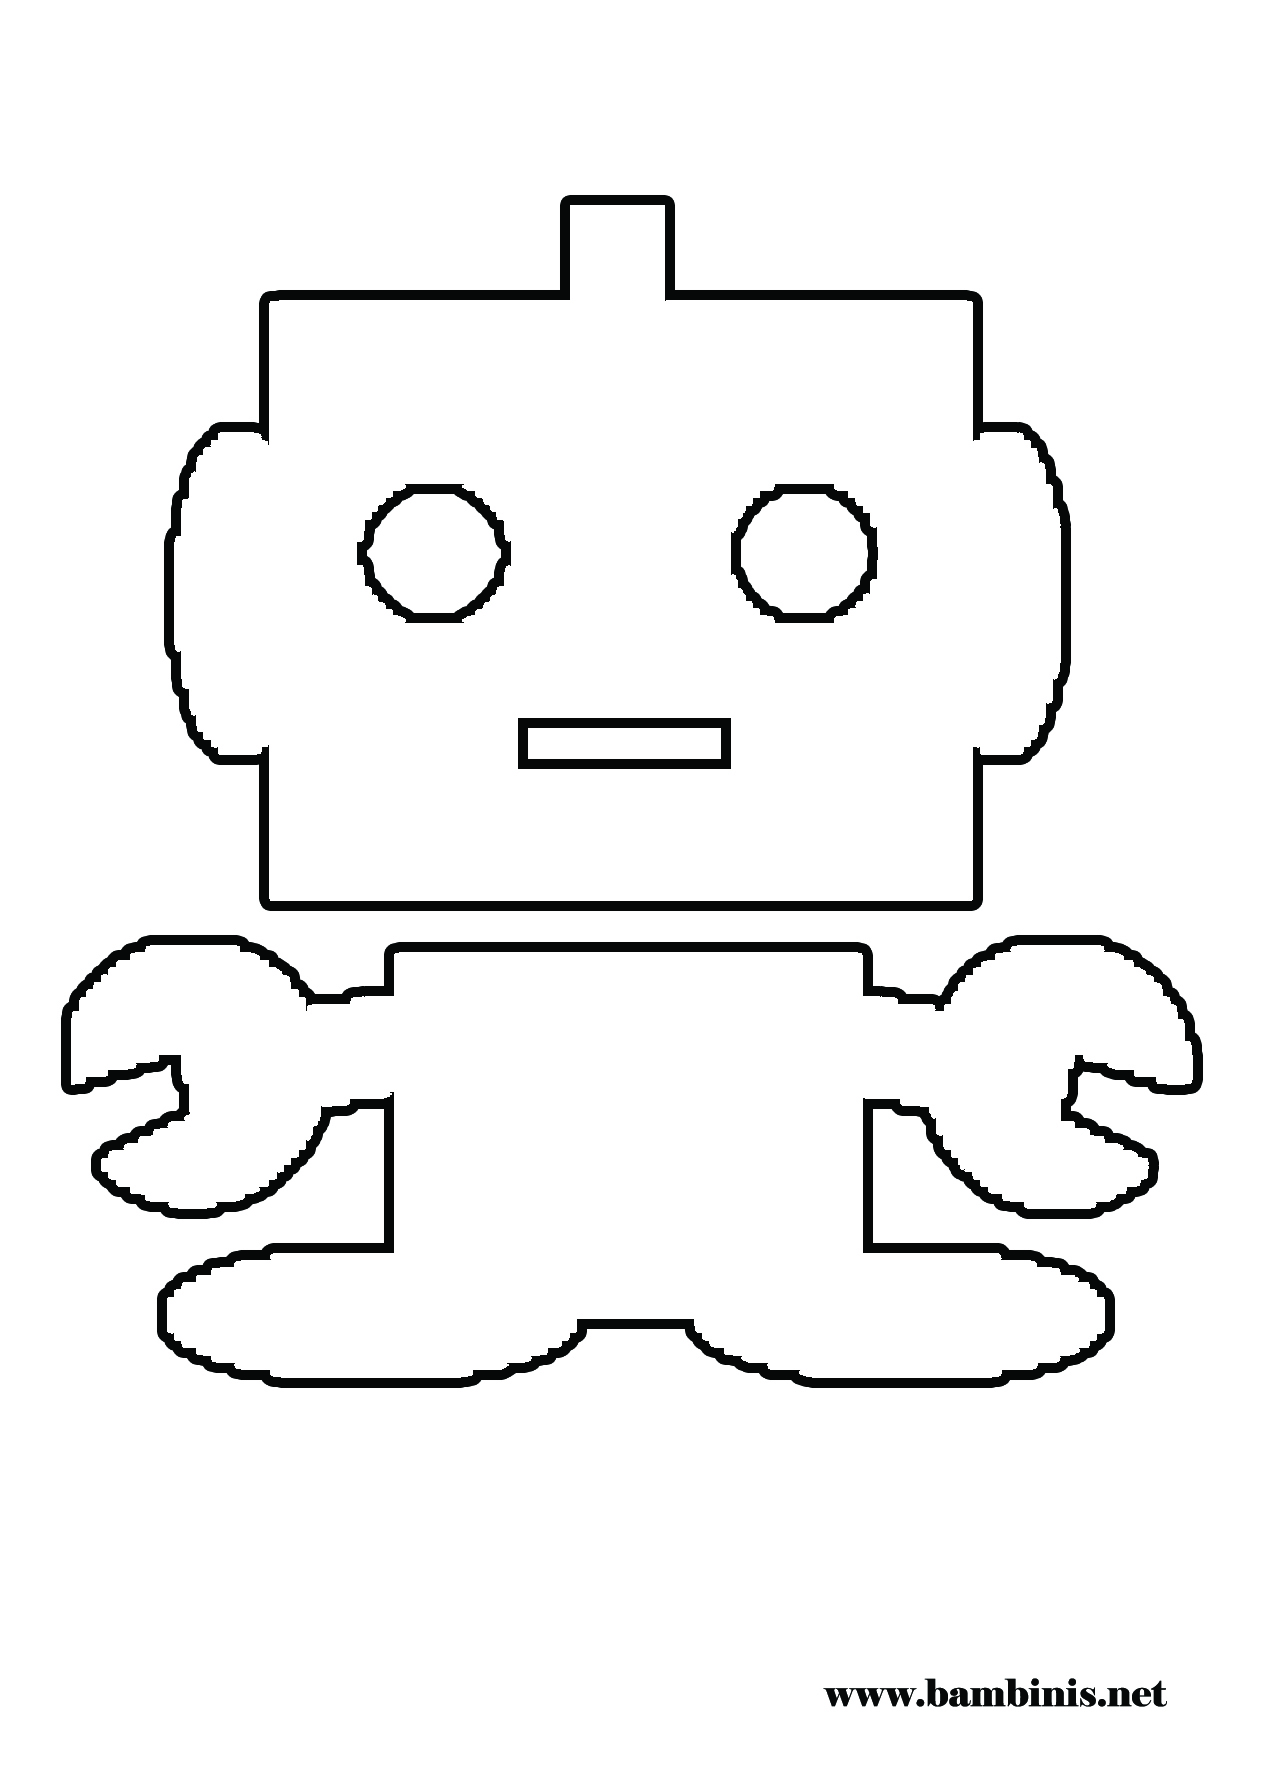 1276x1790 January Coloring Pages For Kids Free